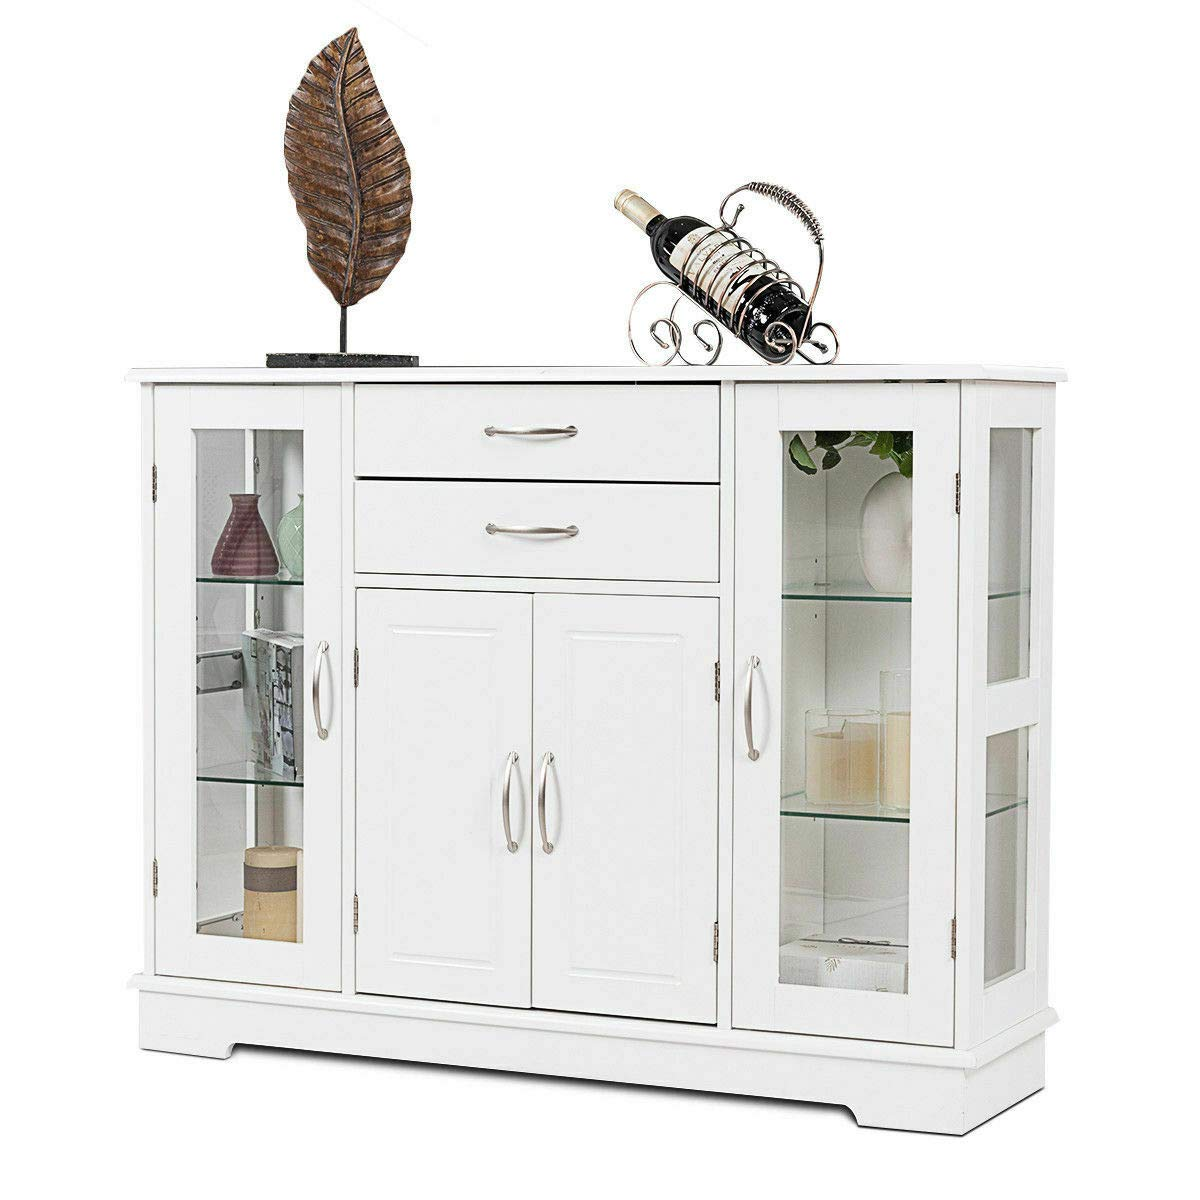 FDInspiration White 42'' Kitchen Cupboard Buffet Storage Cabinet Dining Room Organizer Furniture Hallway Console Table w/Glass Door & Drawers with Ebook